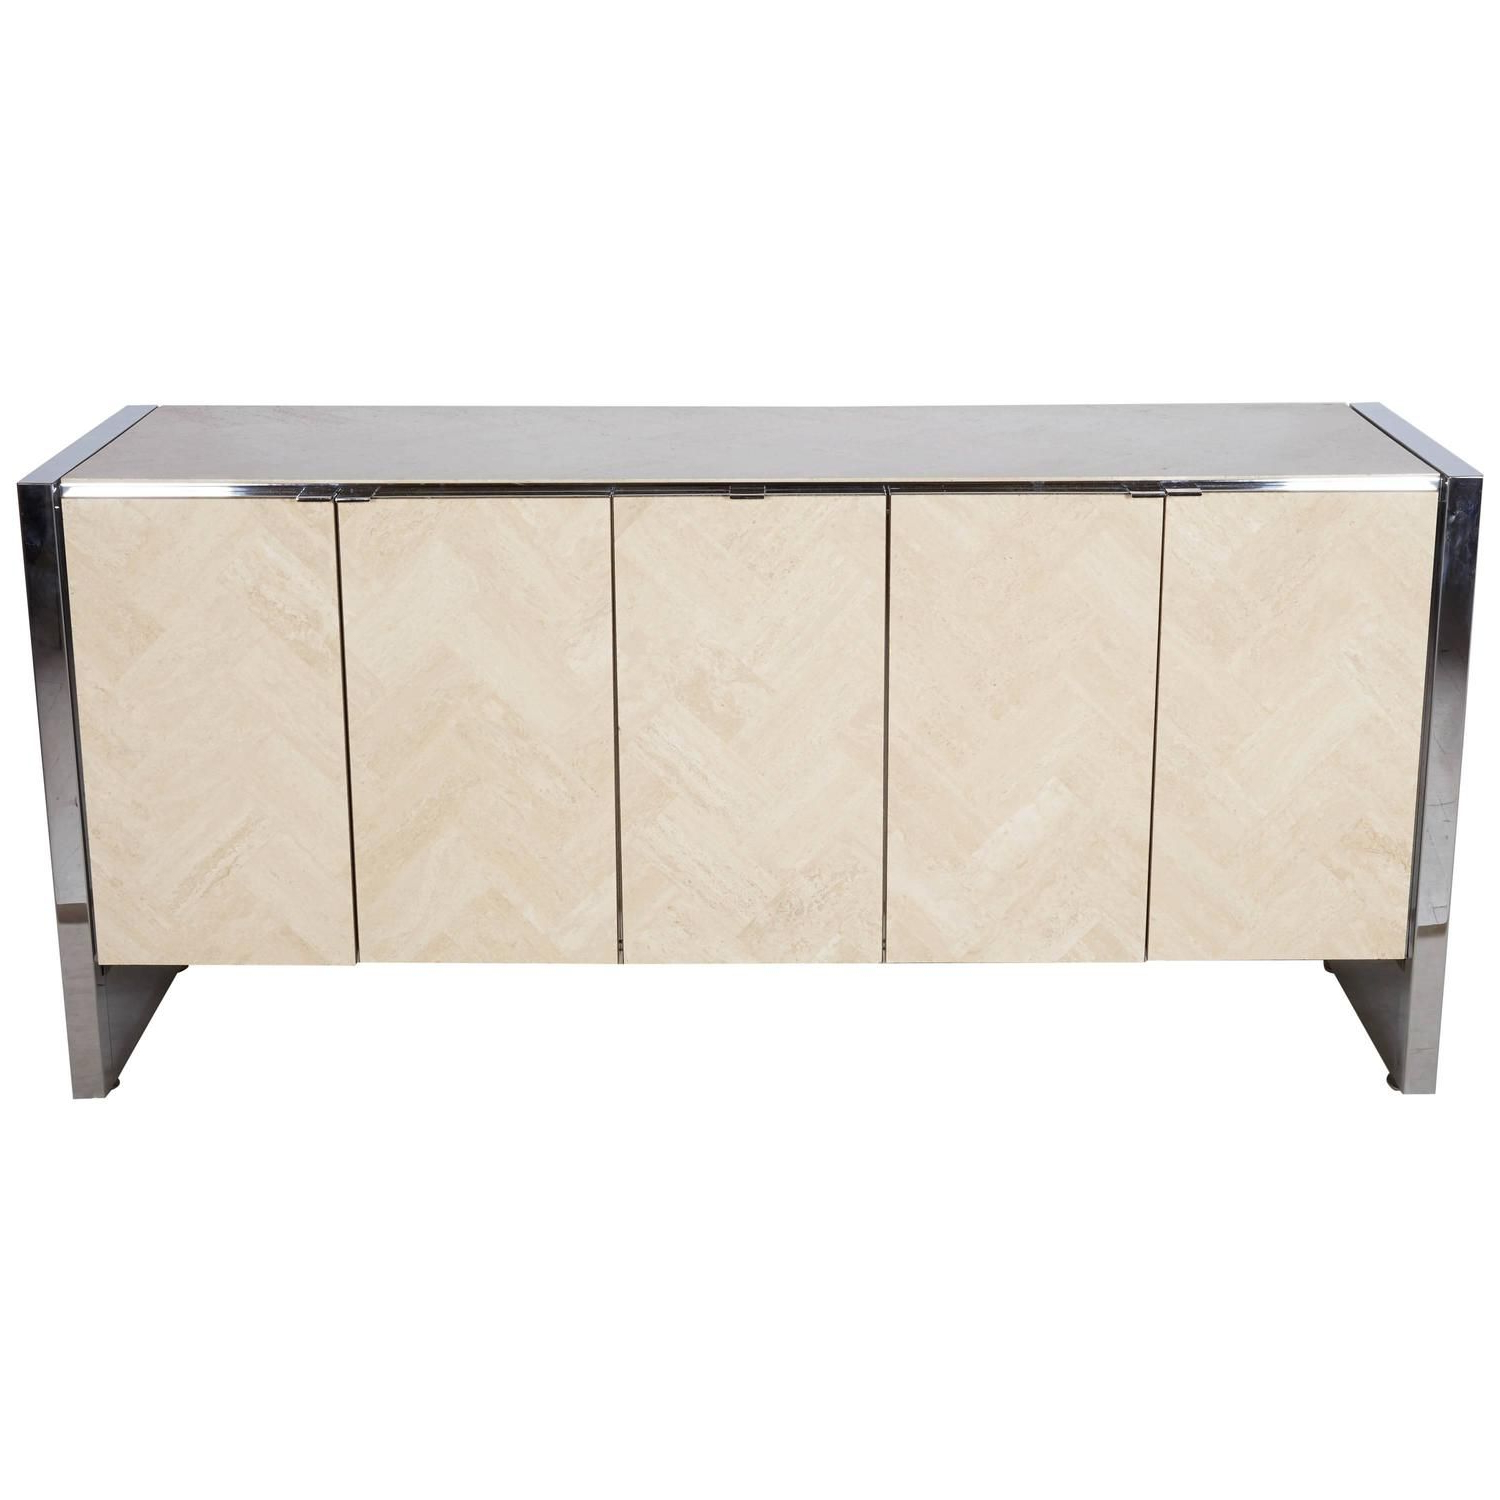 Stephen Credenzas Intended For 2020 Ello Credenza Finished In Carrara Marble In  (View 12 of 20)